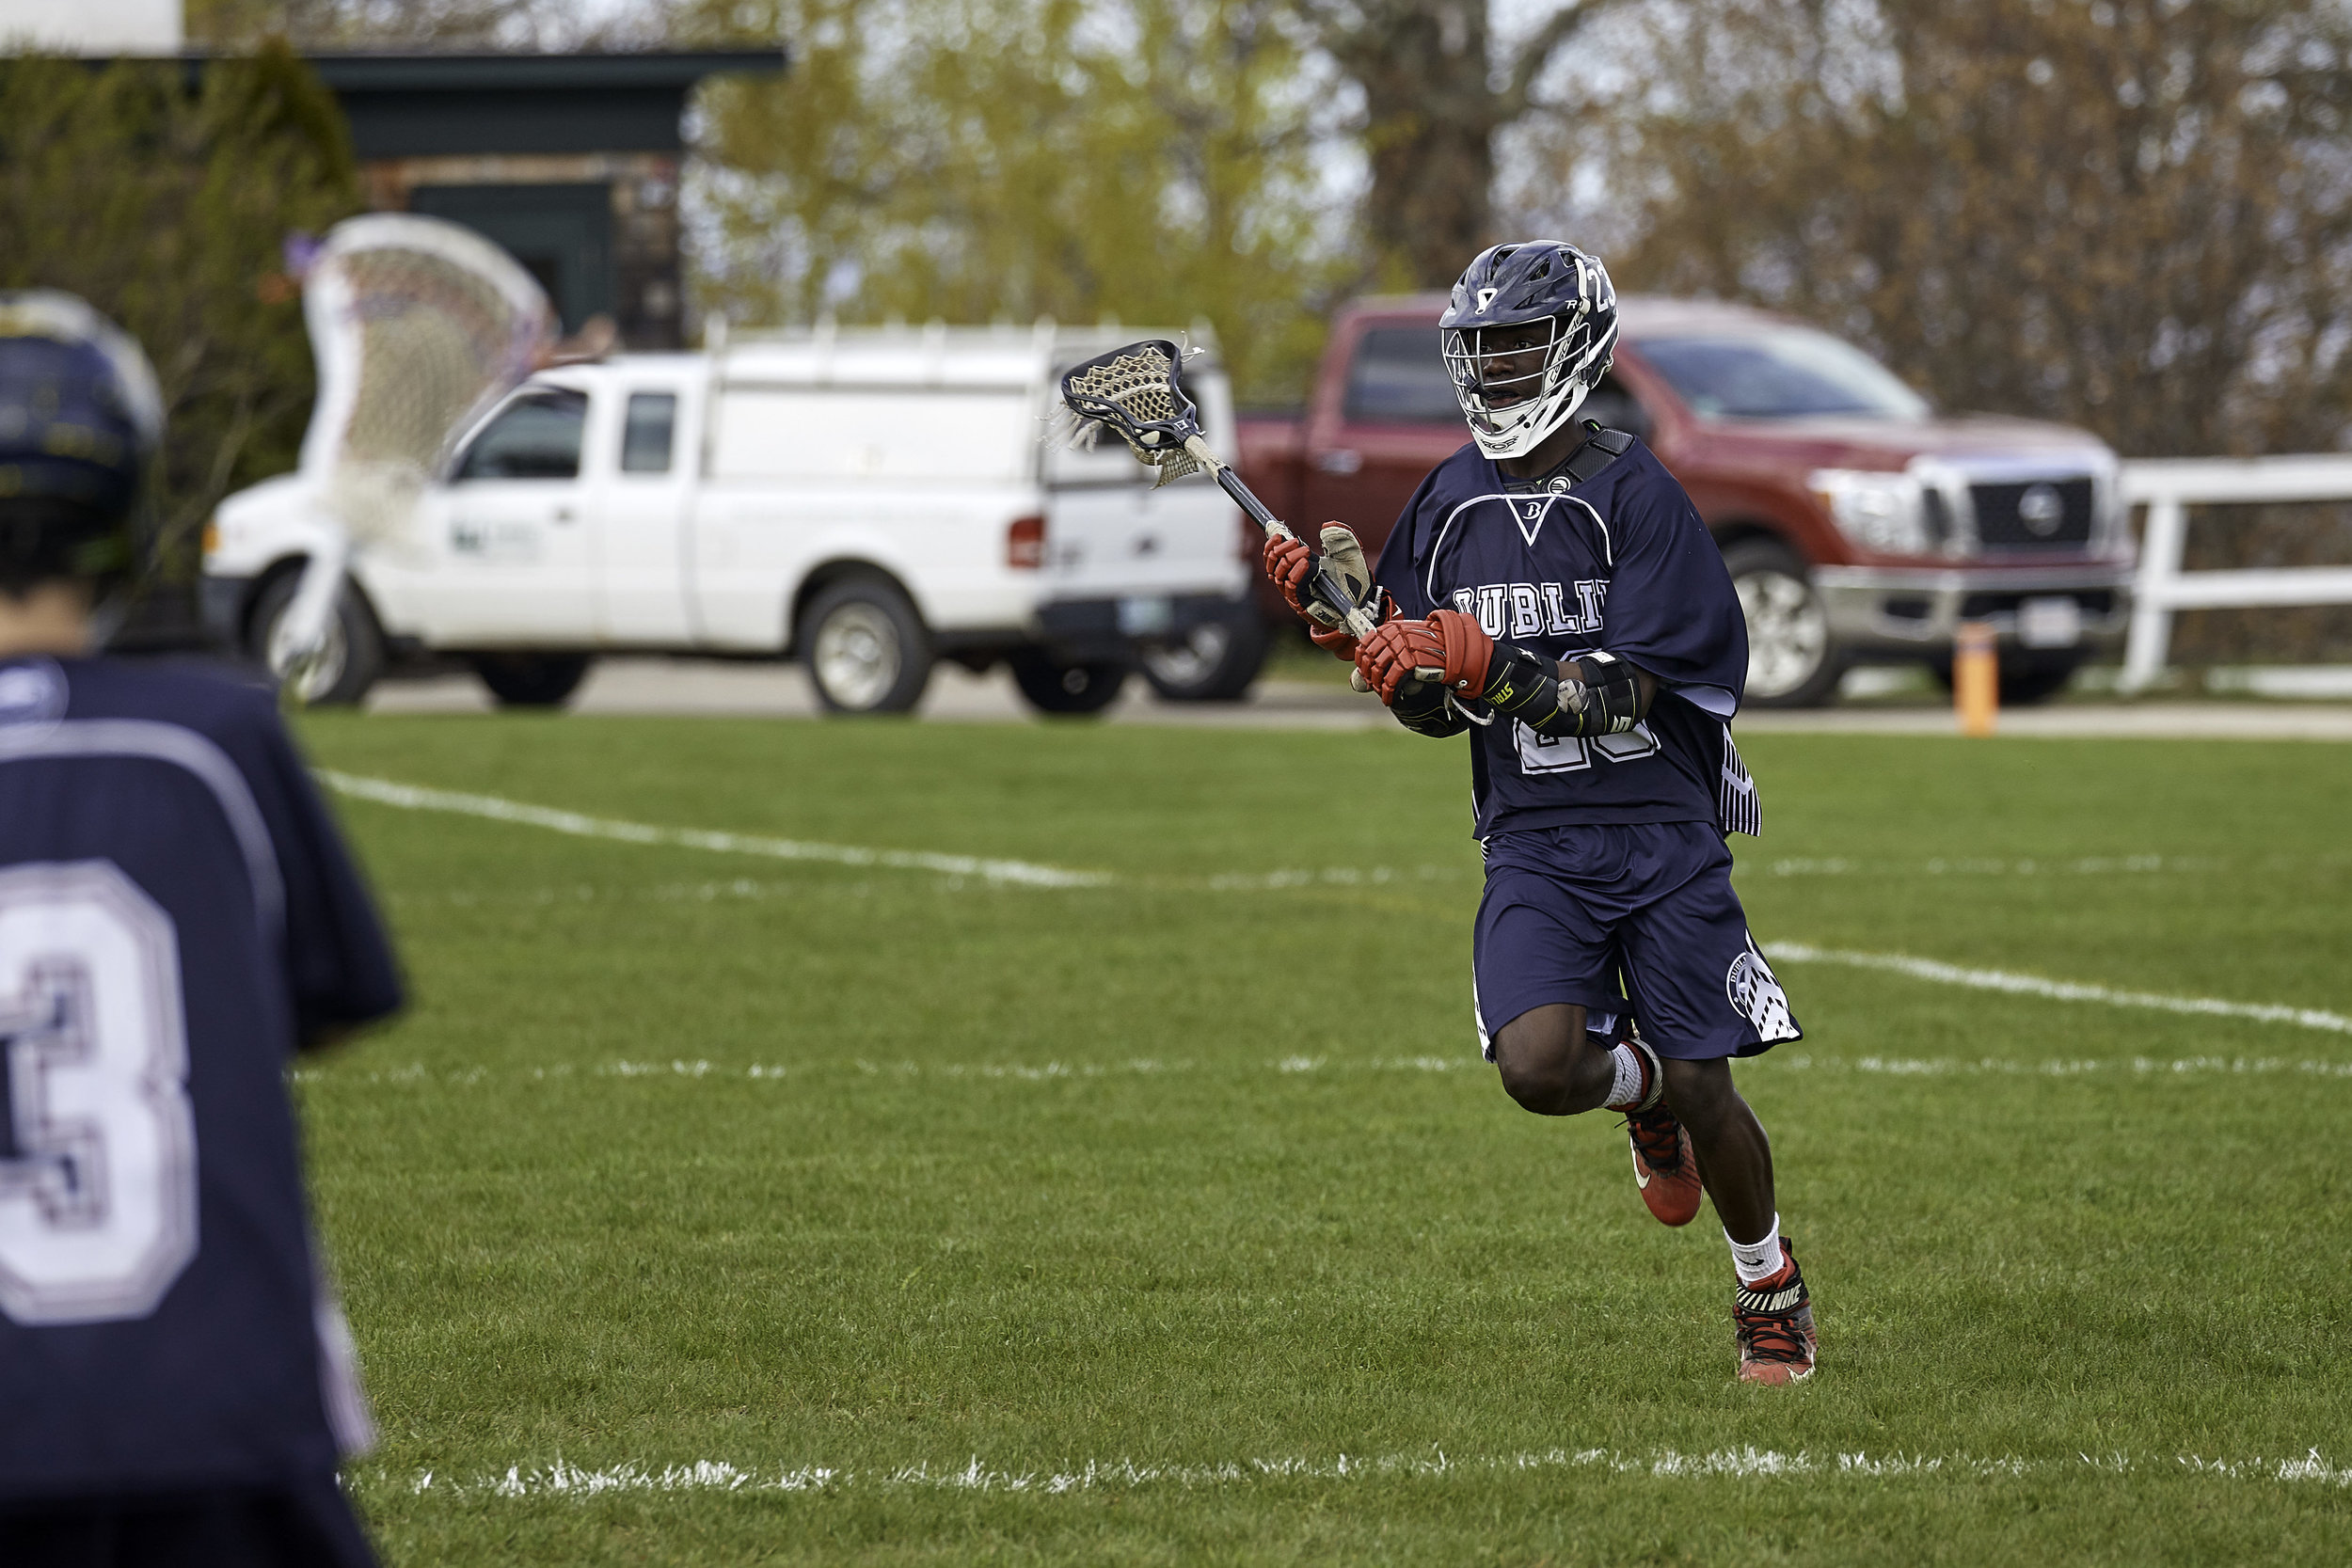 Boys Lax vs Northfield Mount Hermon JV - May 15 2019 - 0050.jpg